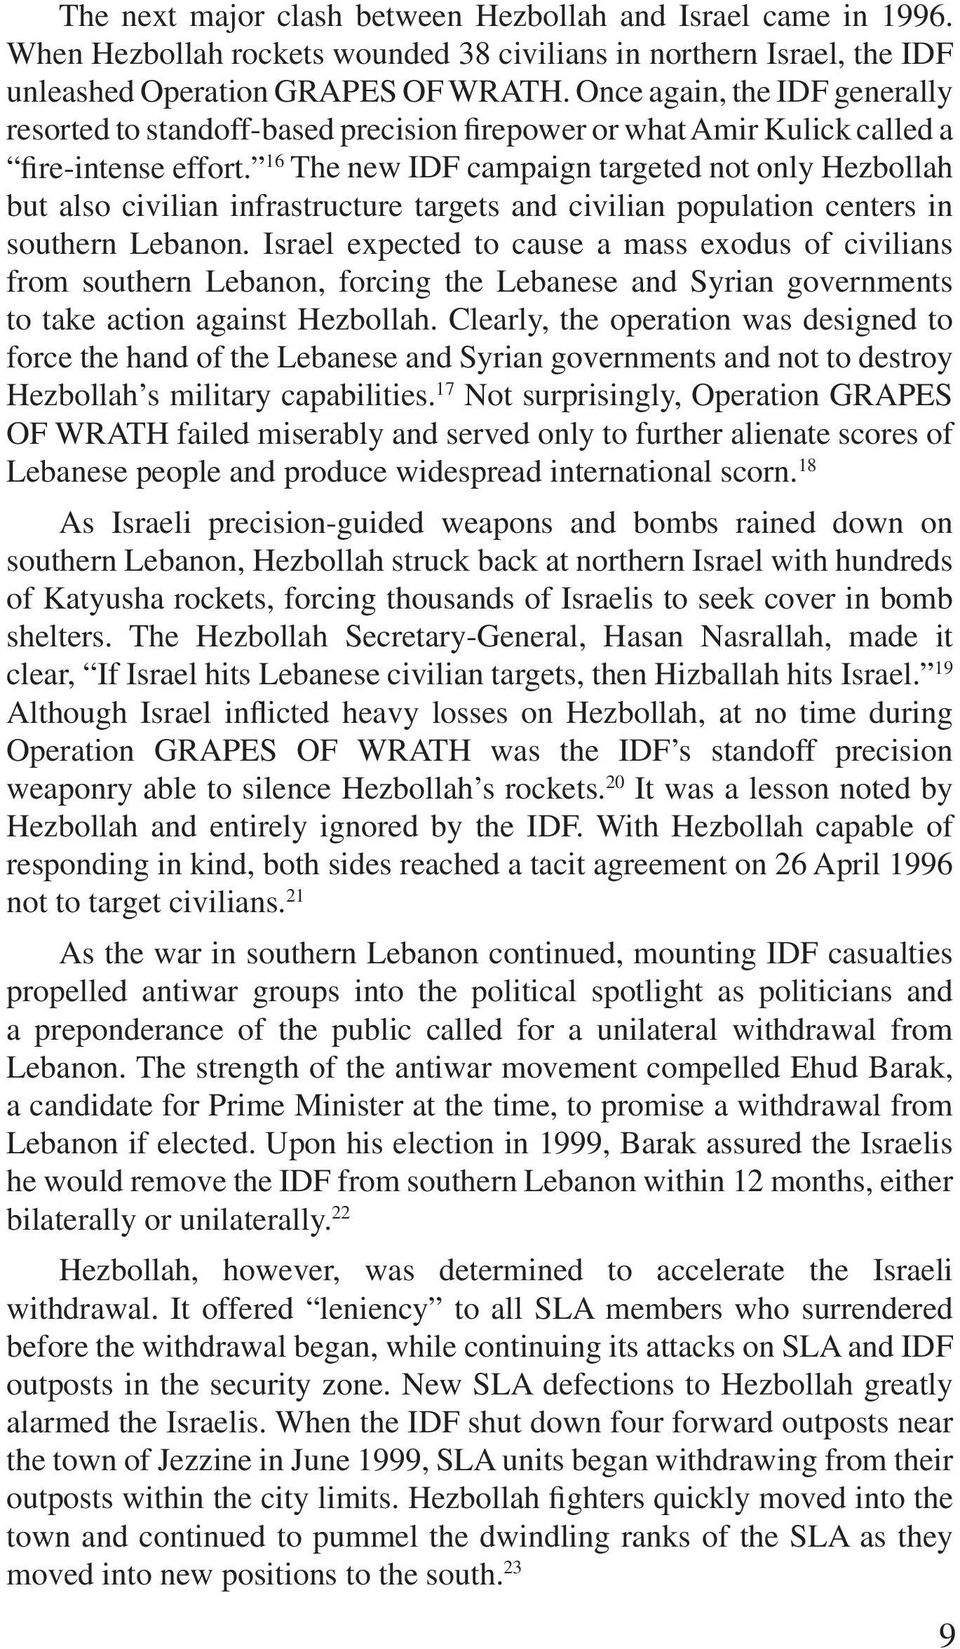 16 The new IDF campaign targeted not only Hezbollah but also civilian infrastructure targets and civilian population centers in southern Lebanon.